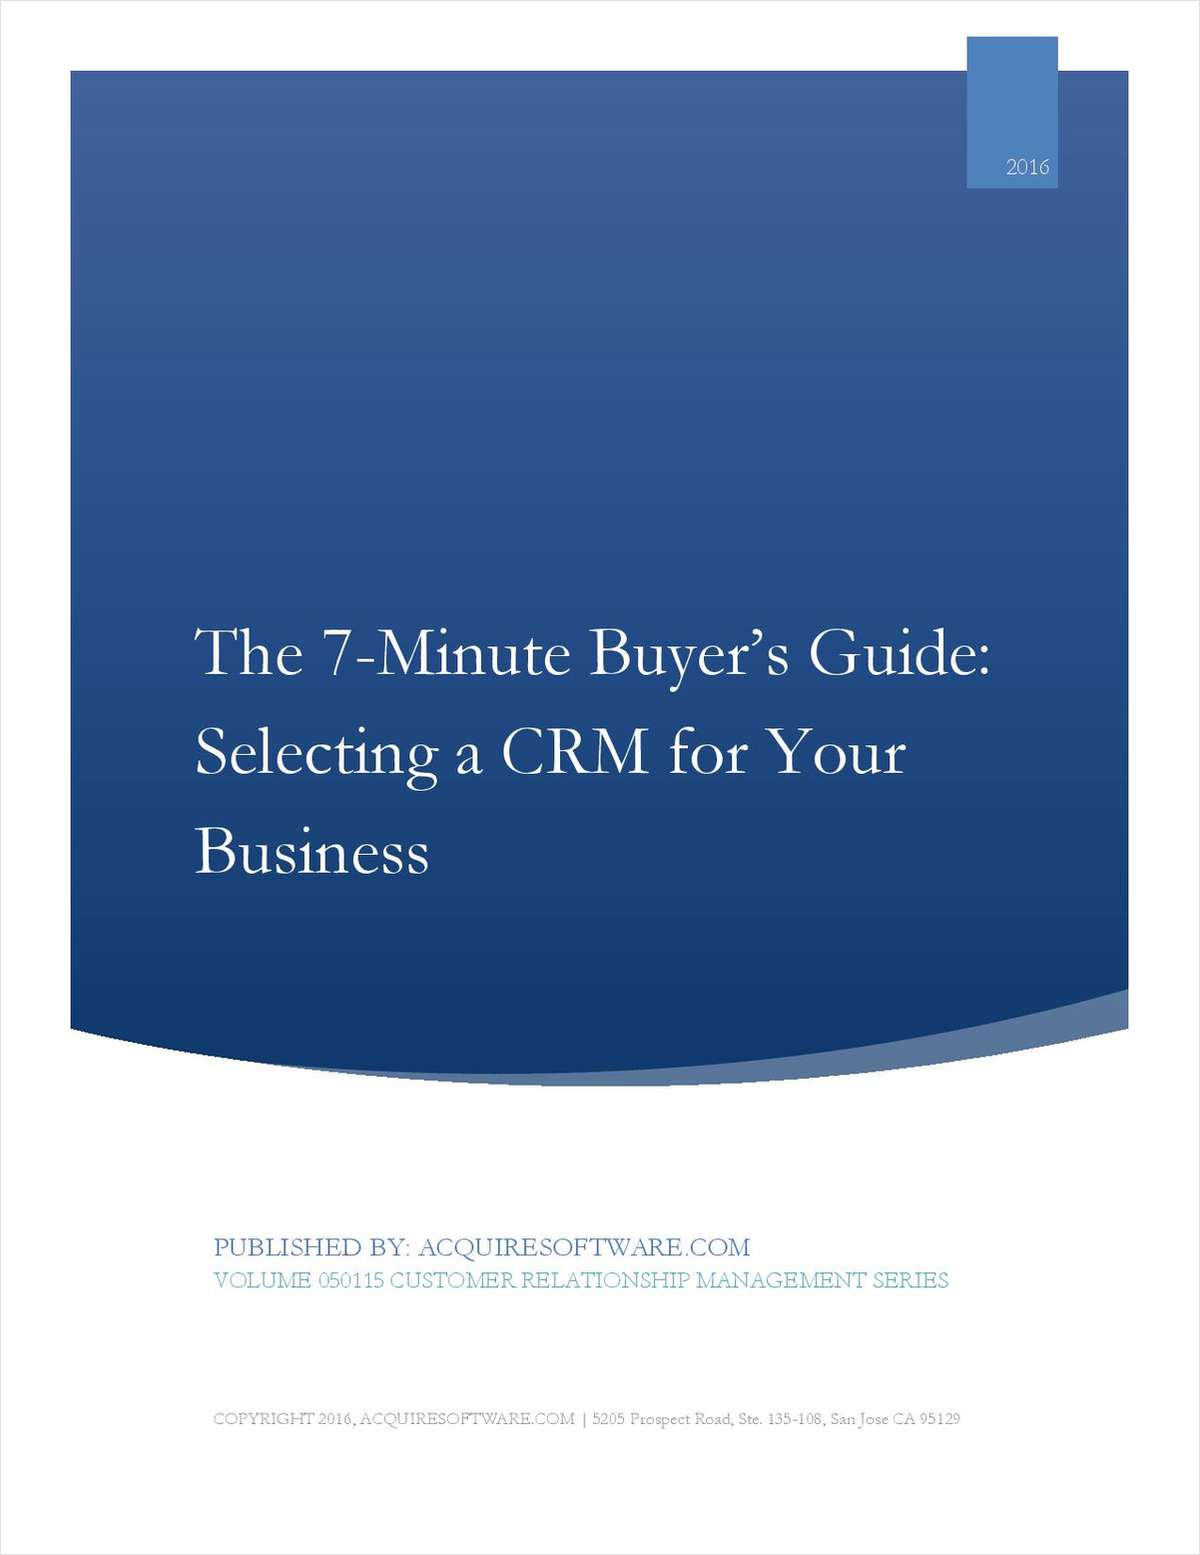 The 7 Minute Buyer's Guide: Identifying and Selecting the Right Sales and Customer Management CRM for Your Business.